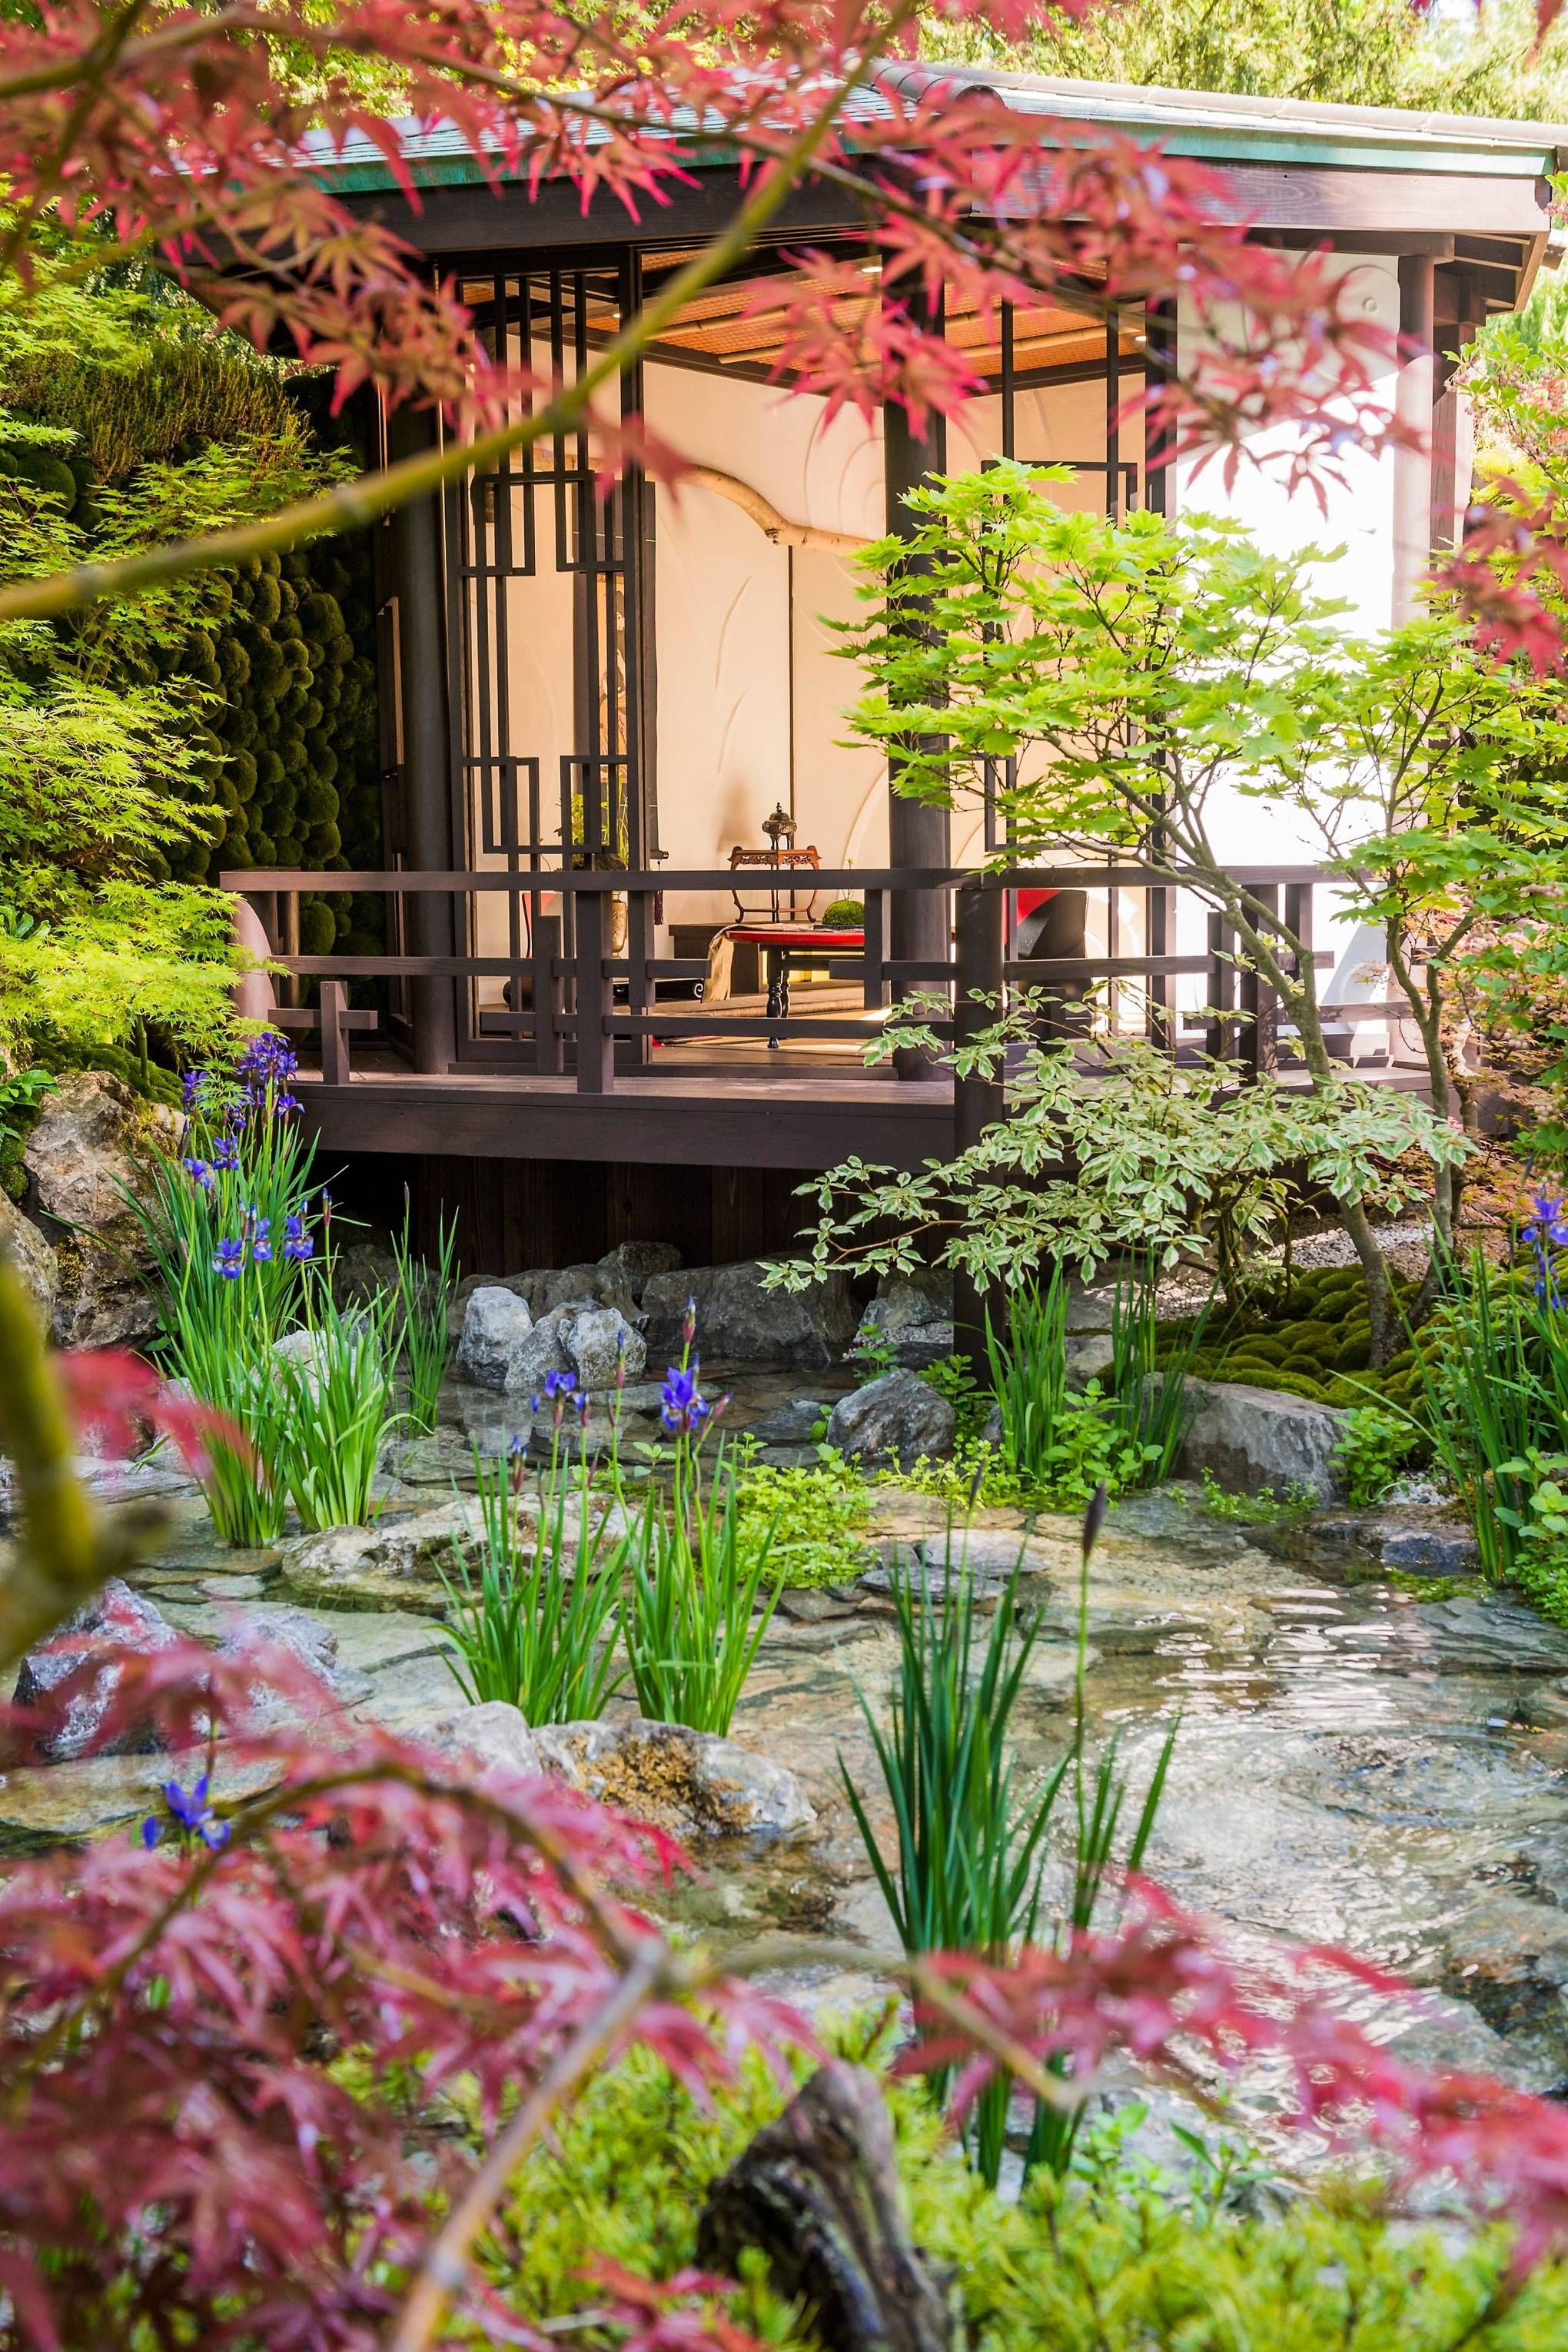 The Chelsea Flower Show 2018 in pictures Chelsea flower